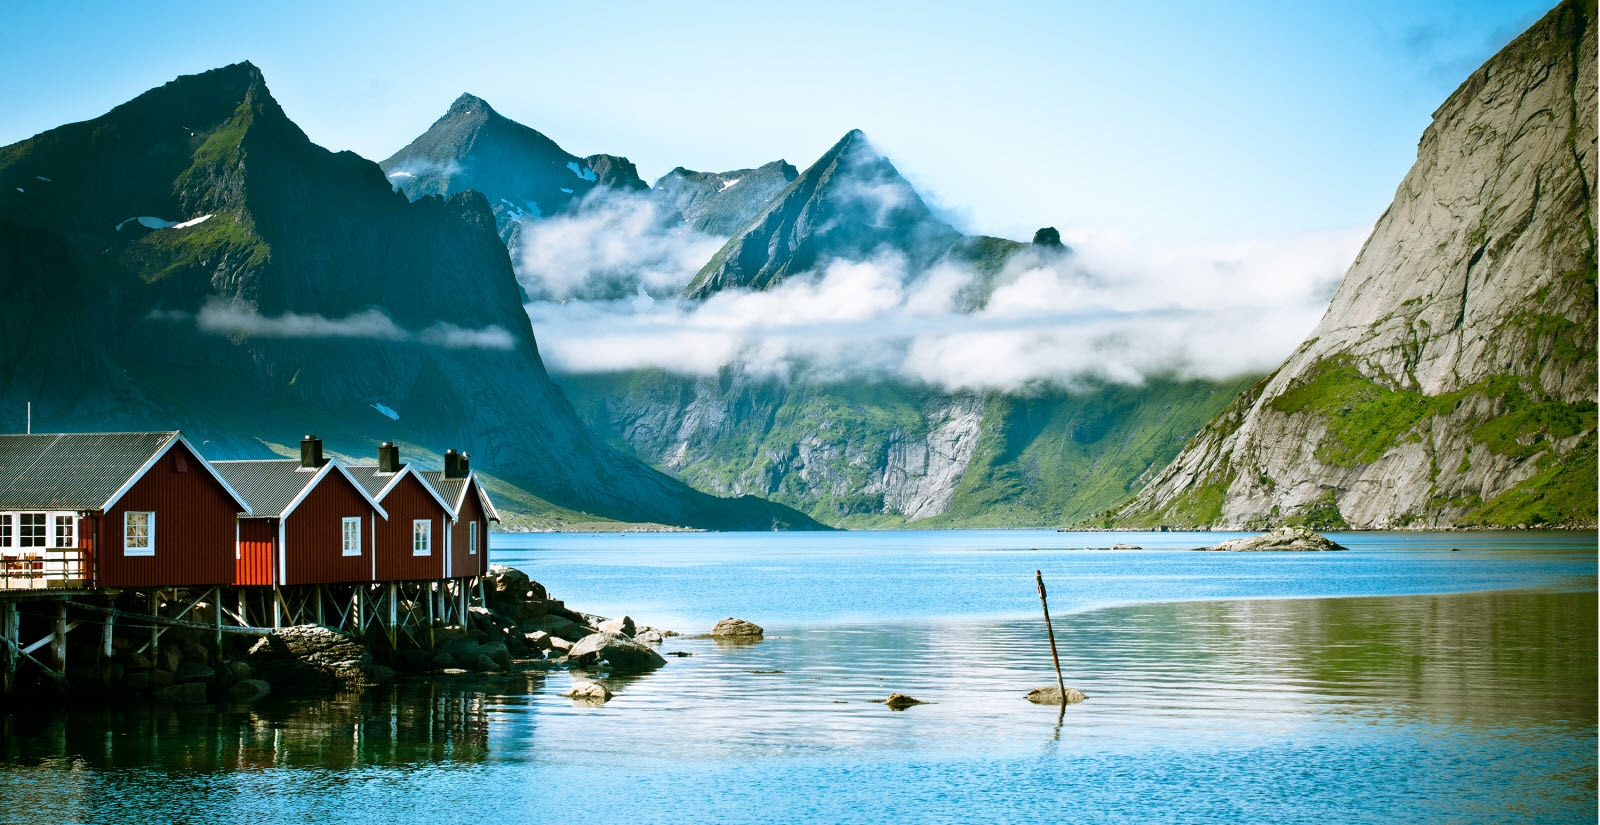 Lofoten Islands by Yanis Ourabah